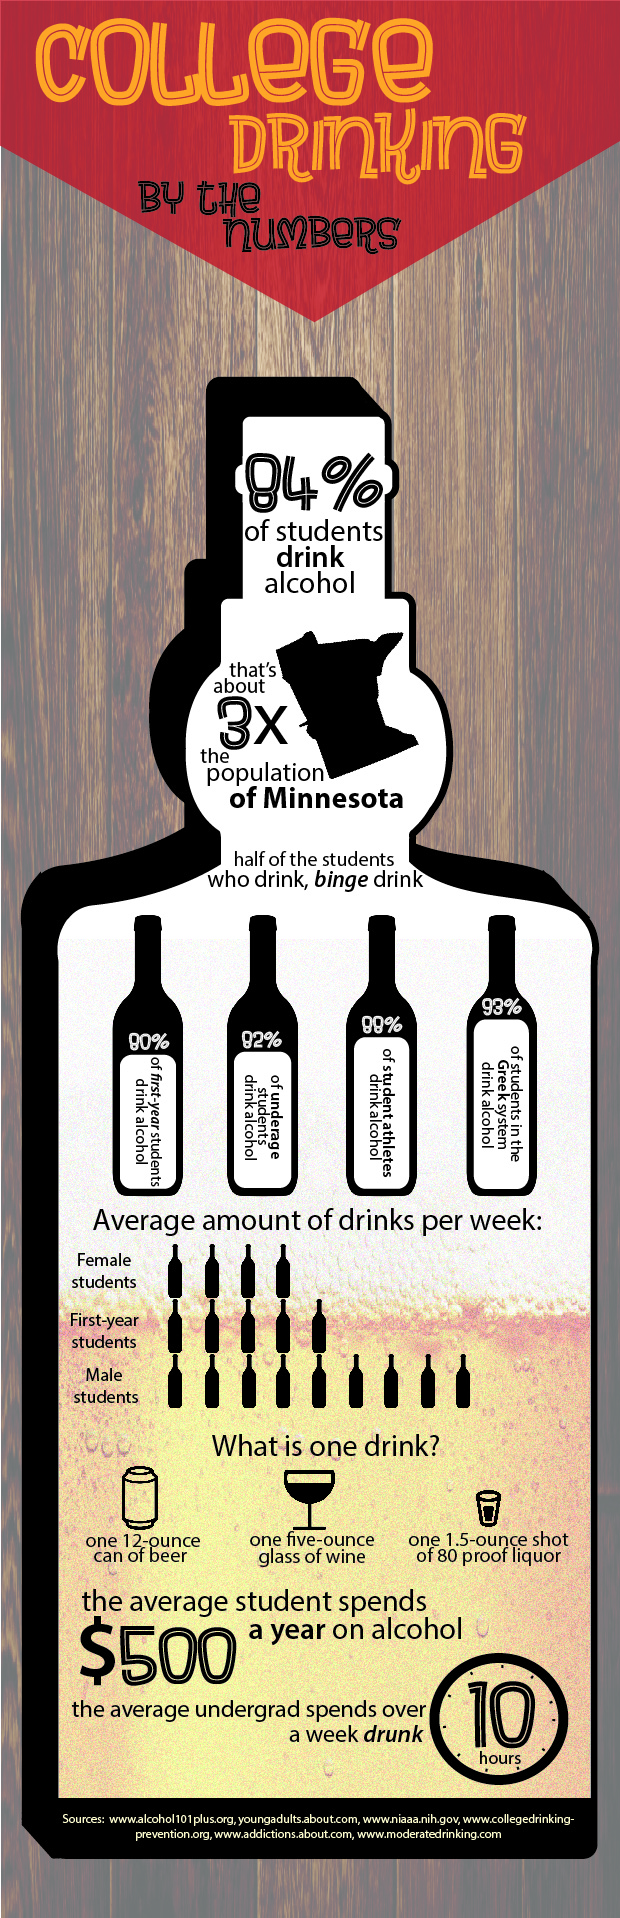 140331_newCOLLEGEDRINKING_INFOGRAPHIC